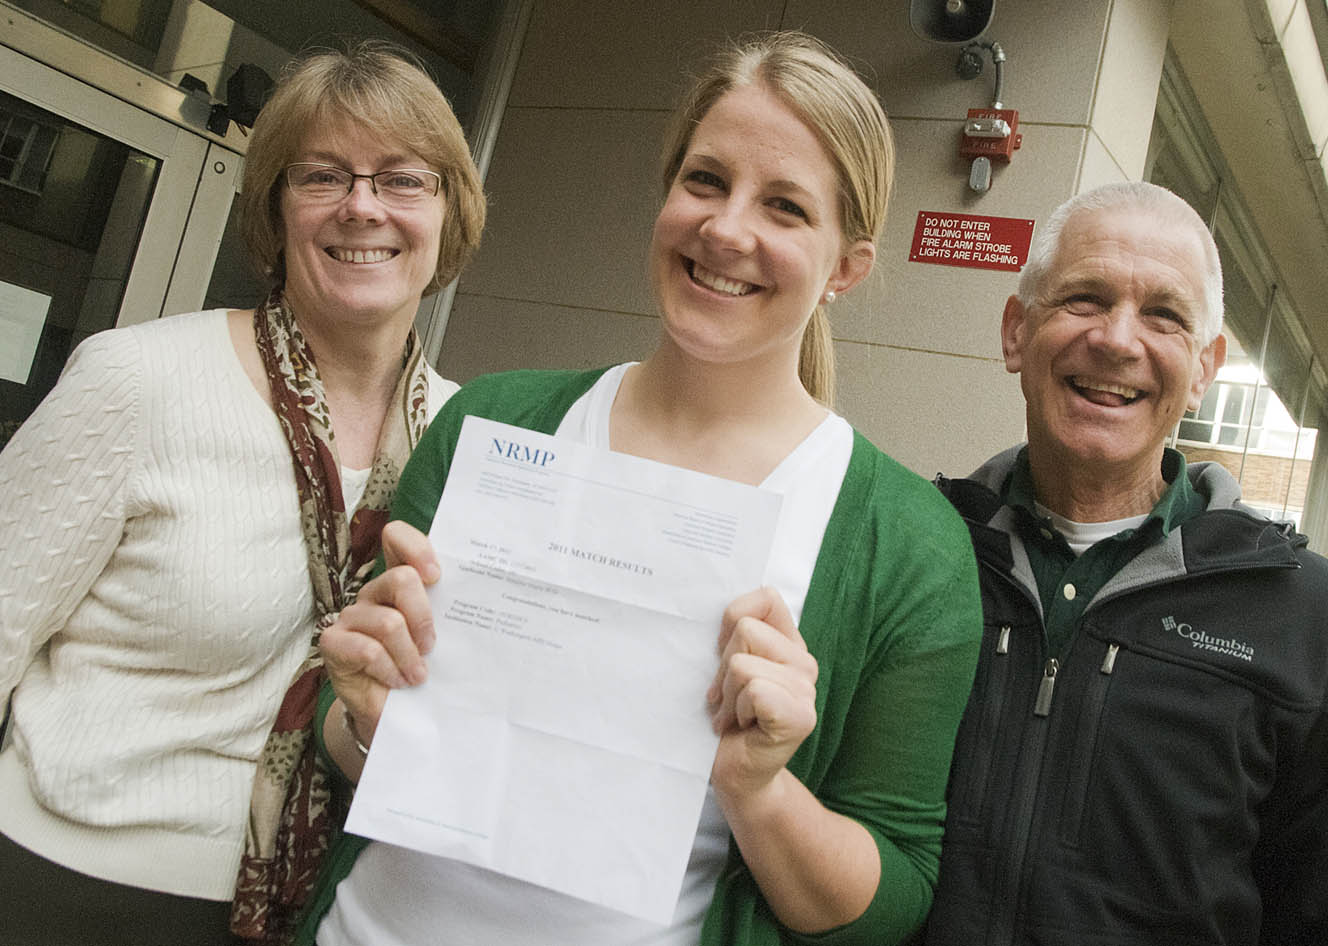 Jennie Wild, with parents and longtime UW employees Lorie and Silas Wild, holds up her residency placement letter.